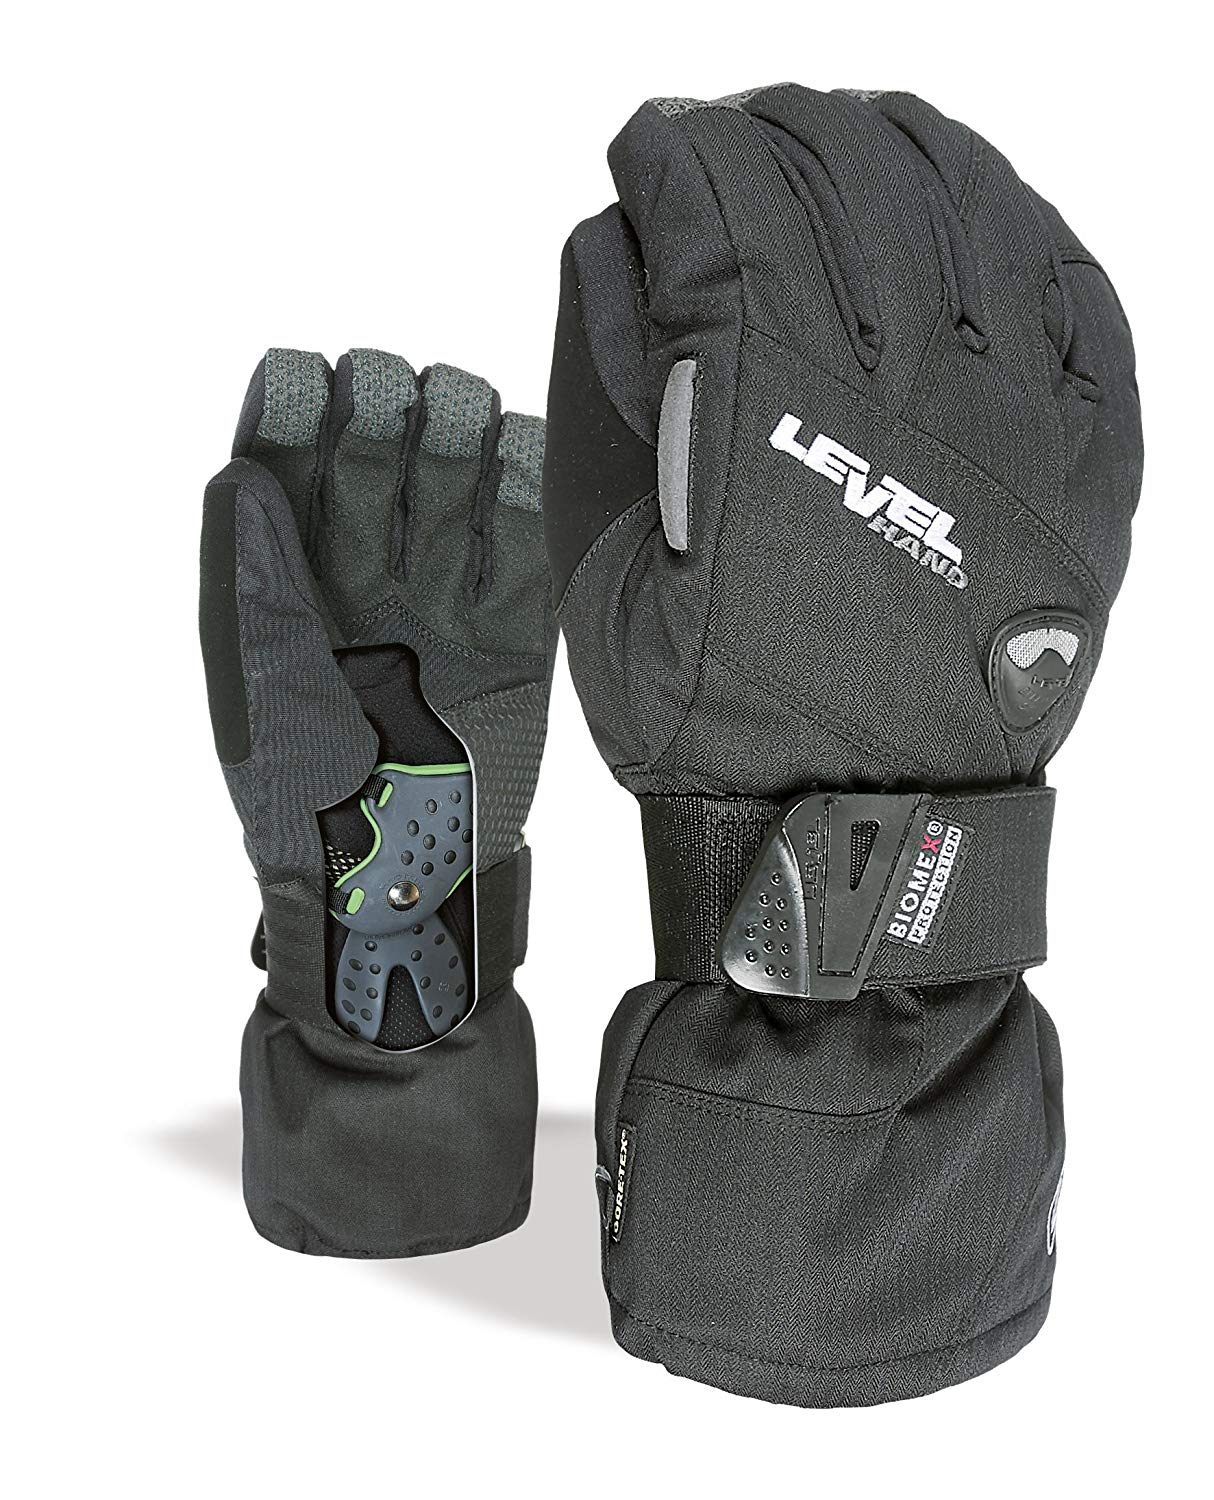 b3306e9d7d2 Get Quotations · Level Half Pipe GTX Snowboard Protective Gloves with  GoreTex Shell